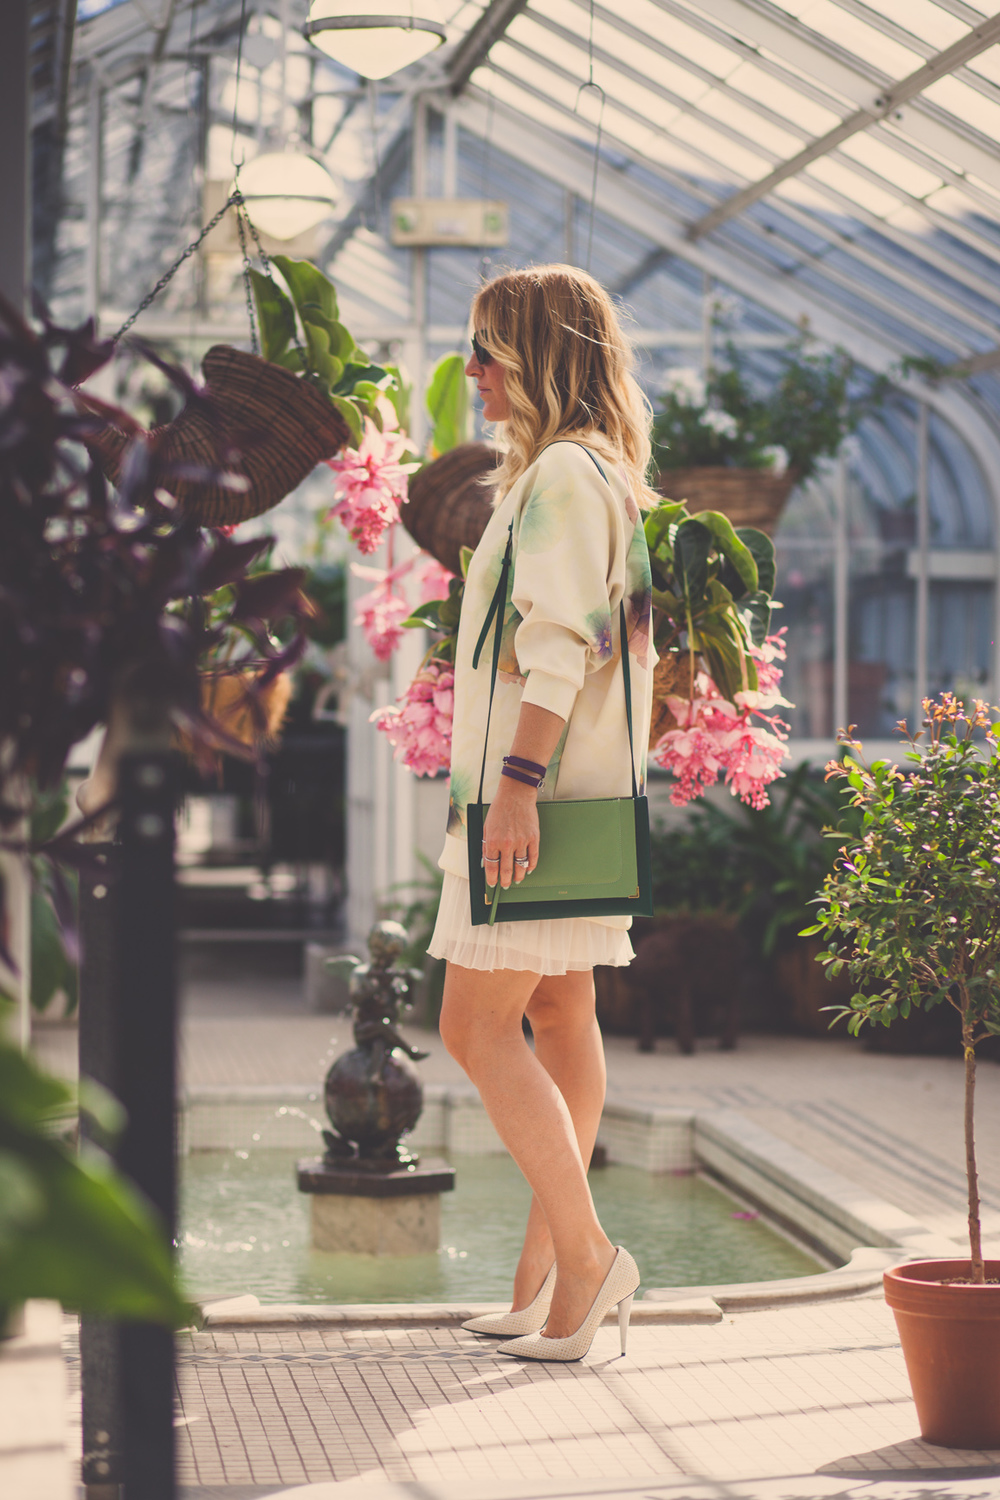 mademoiselle jules greenhouse fashion trend blog